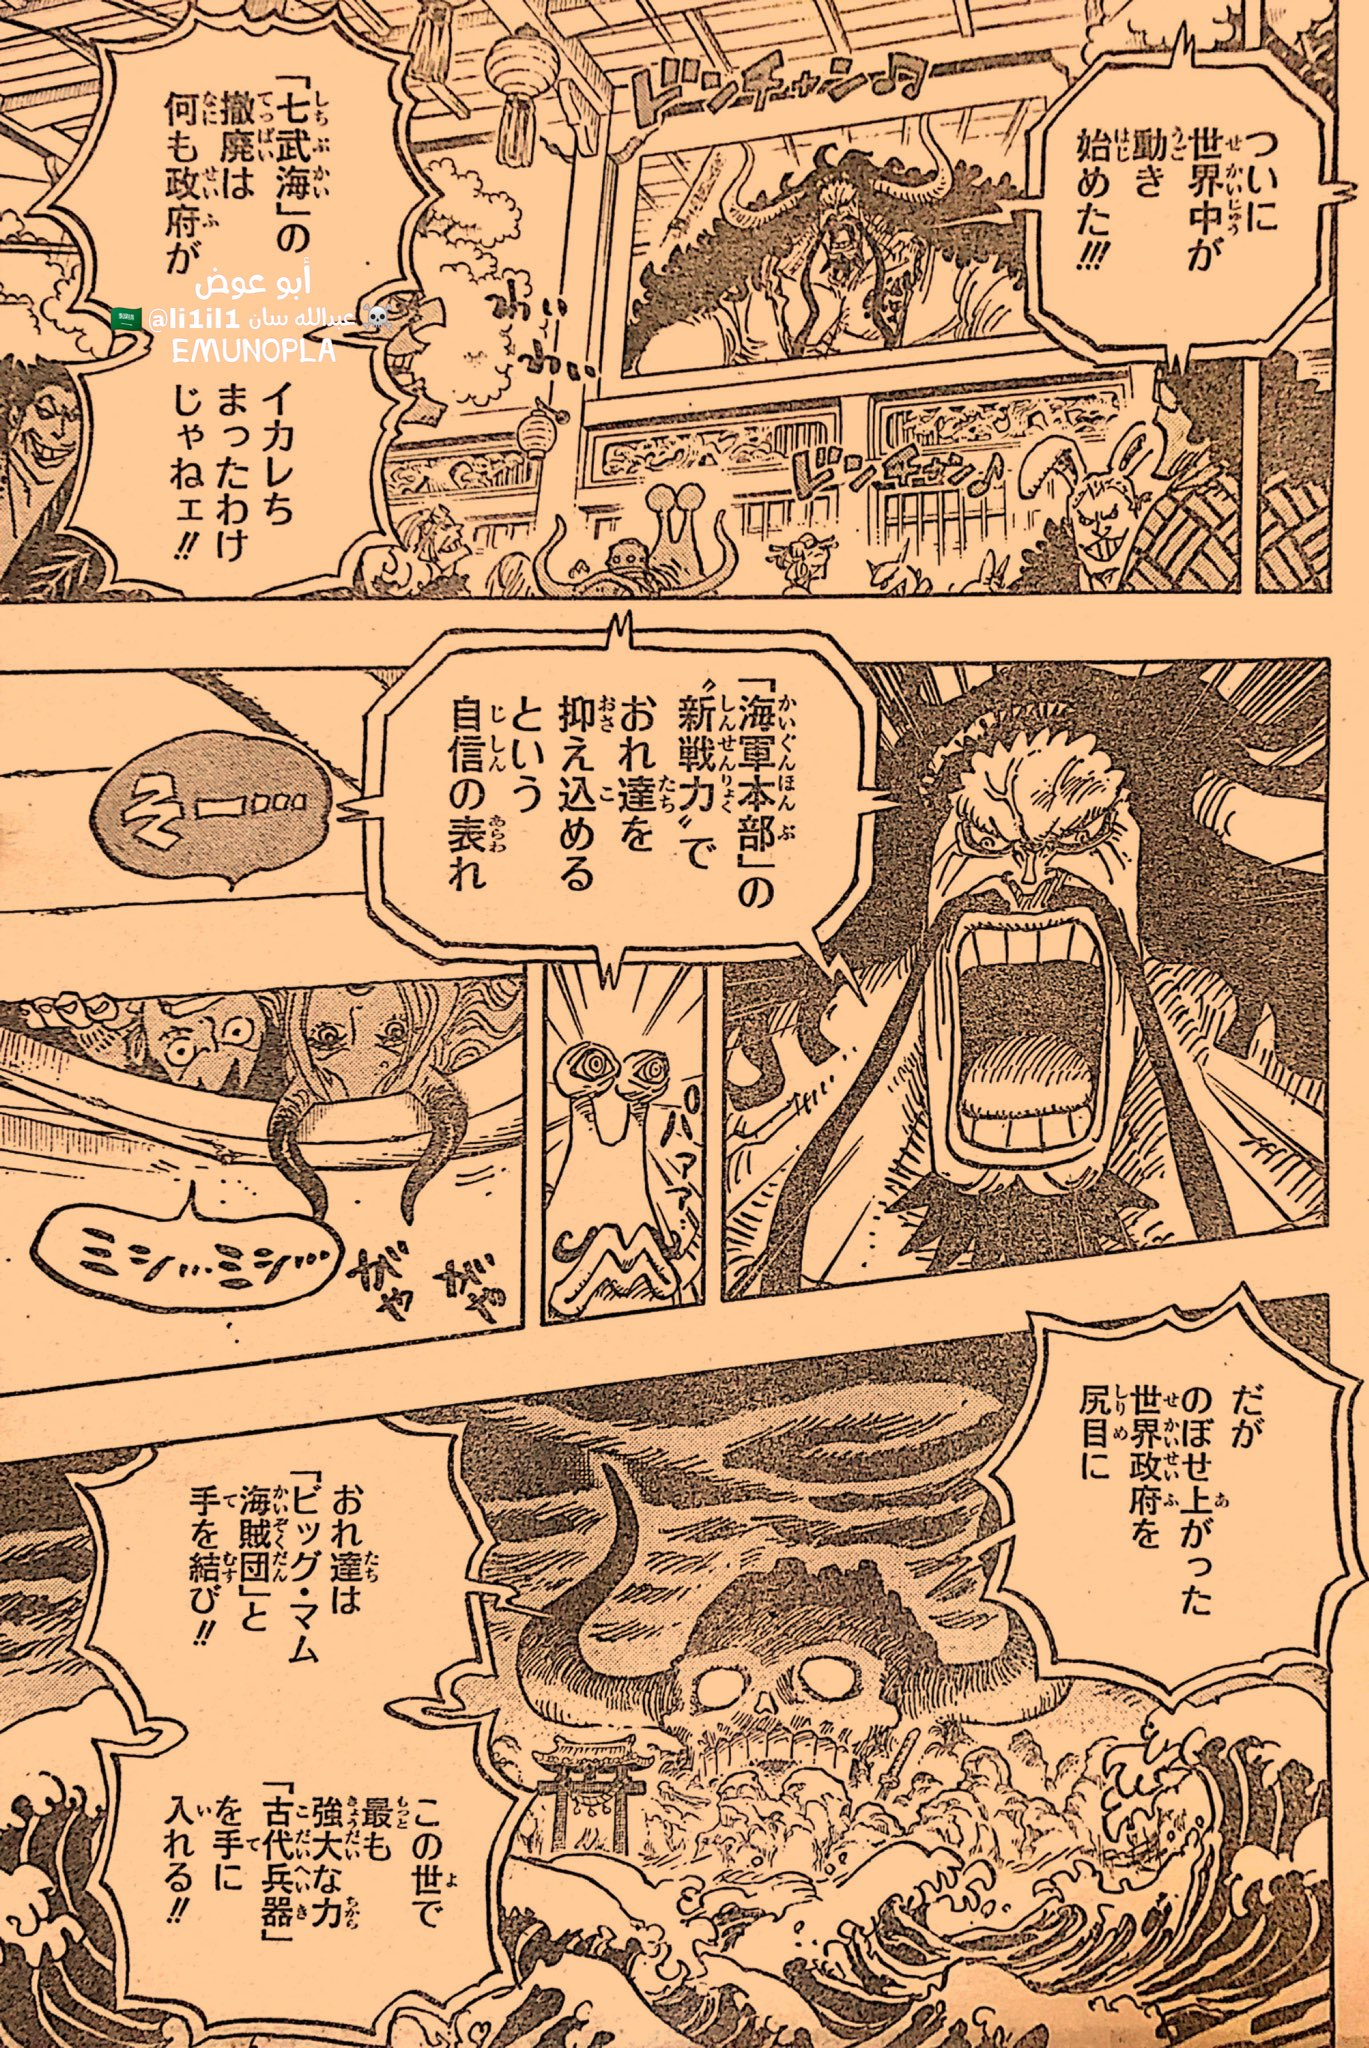 Spoiler One Piece Chapter 985 Spoiler Summaries And Images Page 2 Worstgen